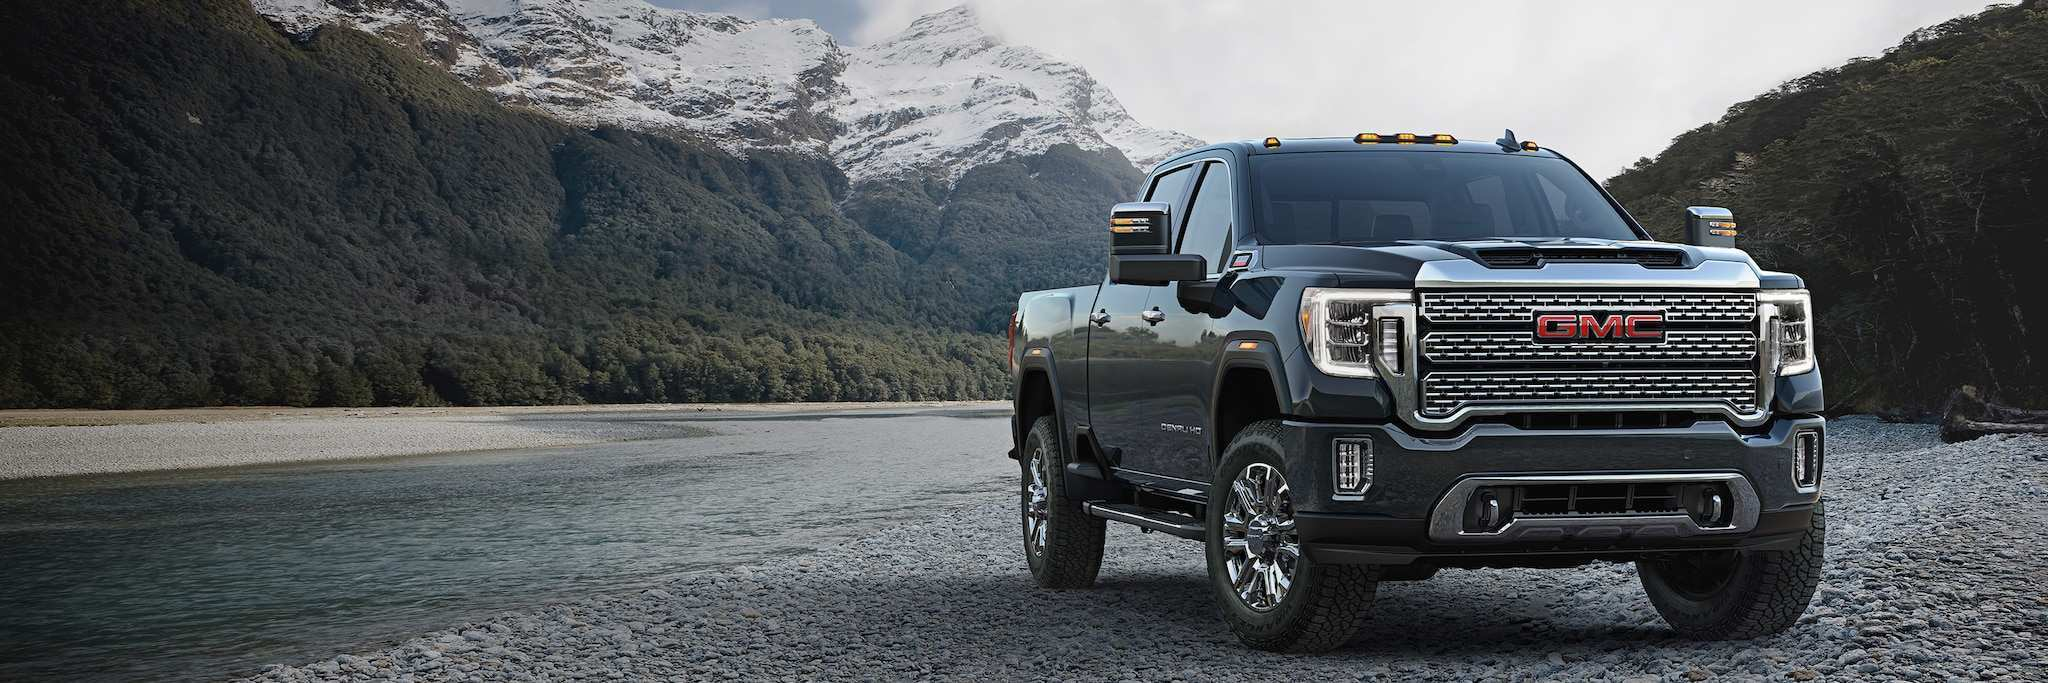 51 The 2020 Gmc Sierra 2500 Engine Options Pricing